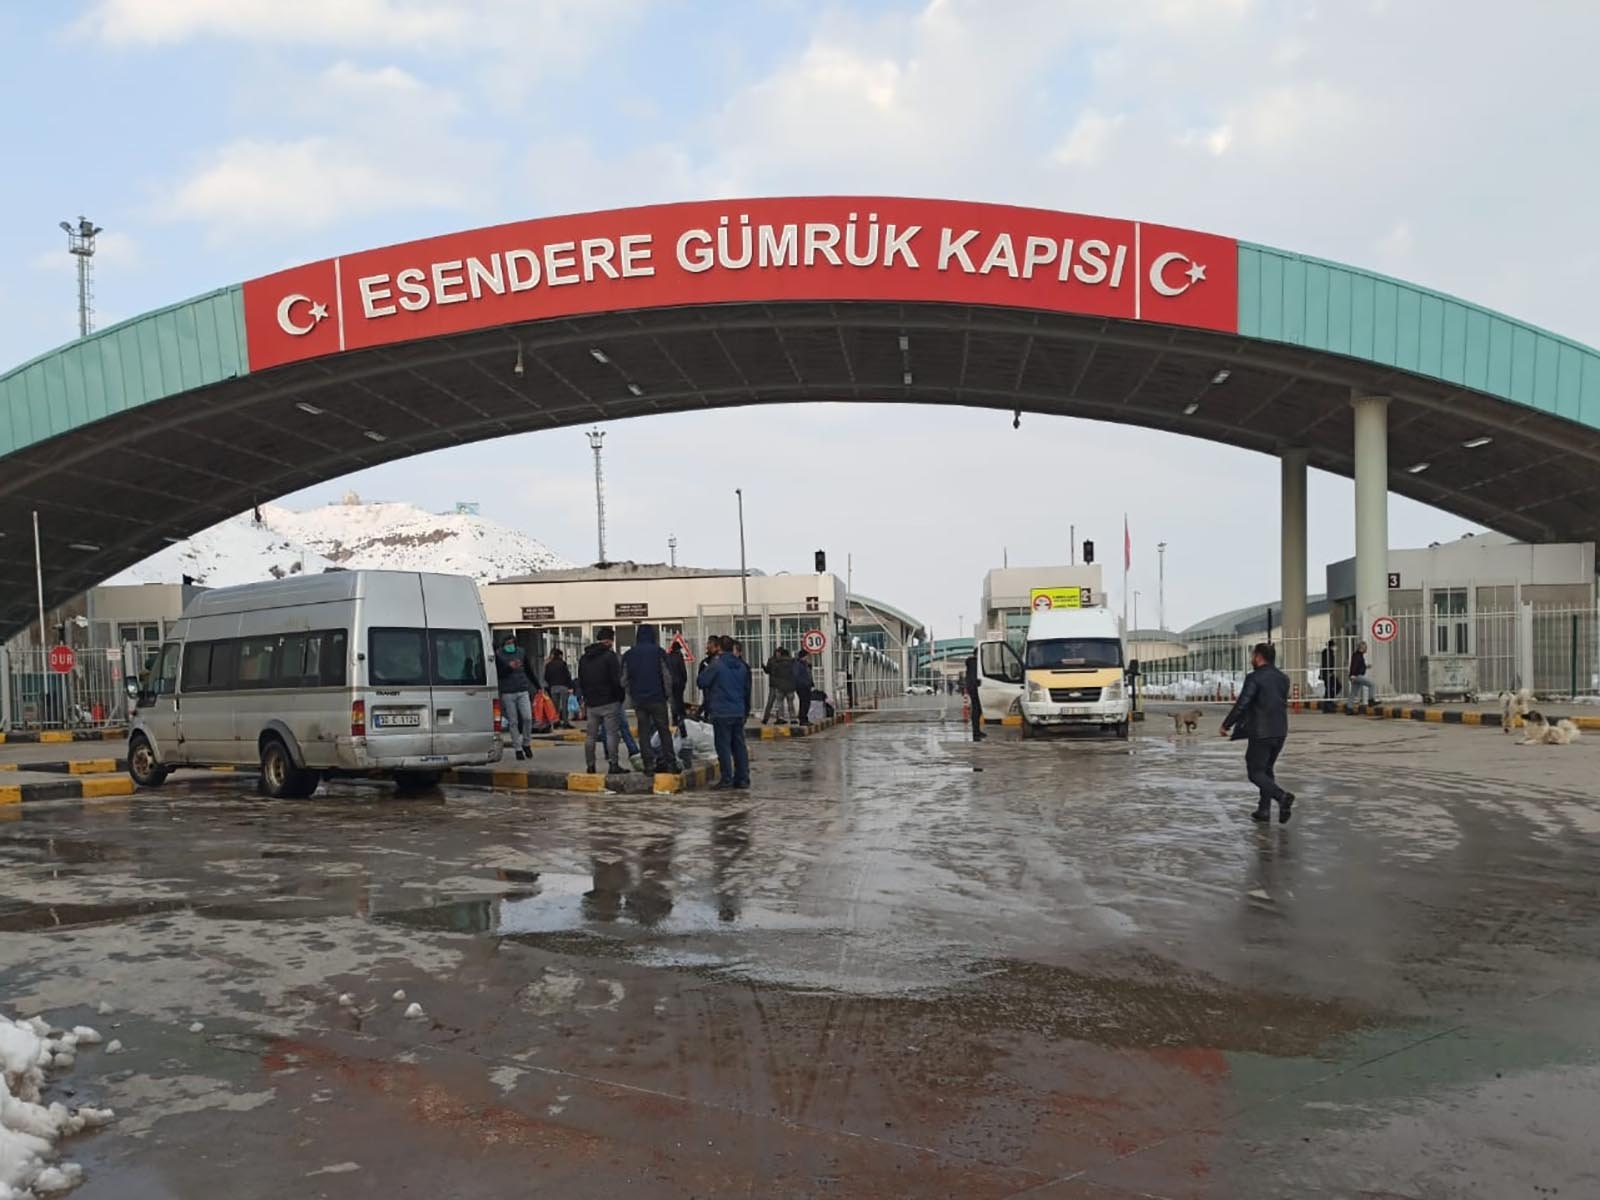 A border crossing between Turkey and Iran in Turkey's Yuksekova district. Turkey has temporarily closed its border over the coronavirus outbreak.